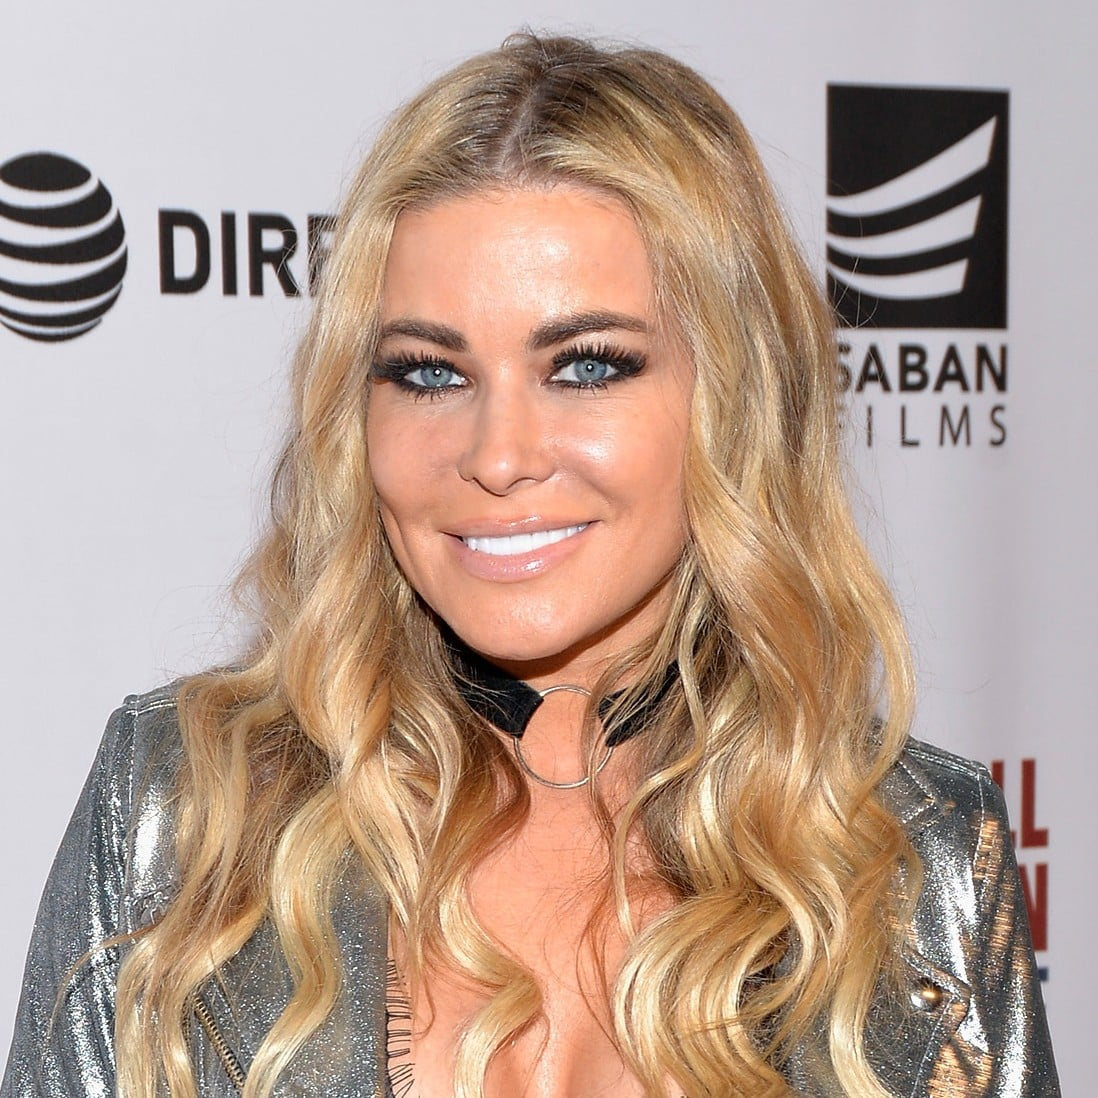 pics Carmen Electra born April 20, 1972 (age 46)